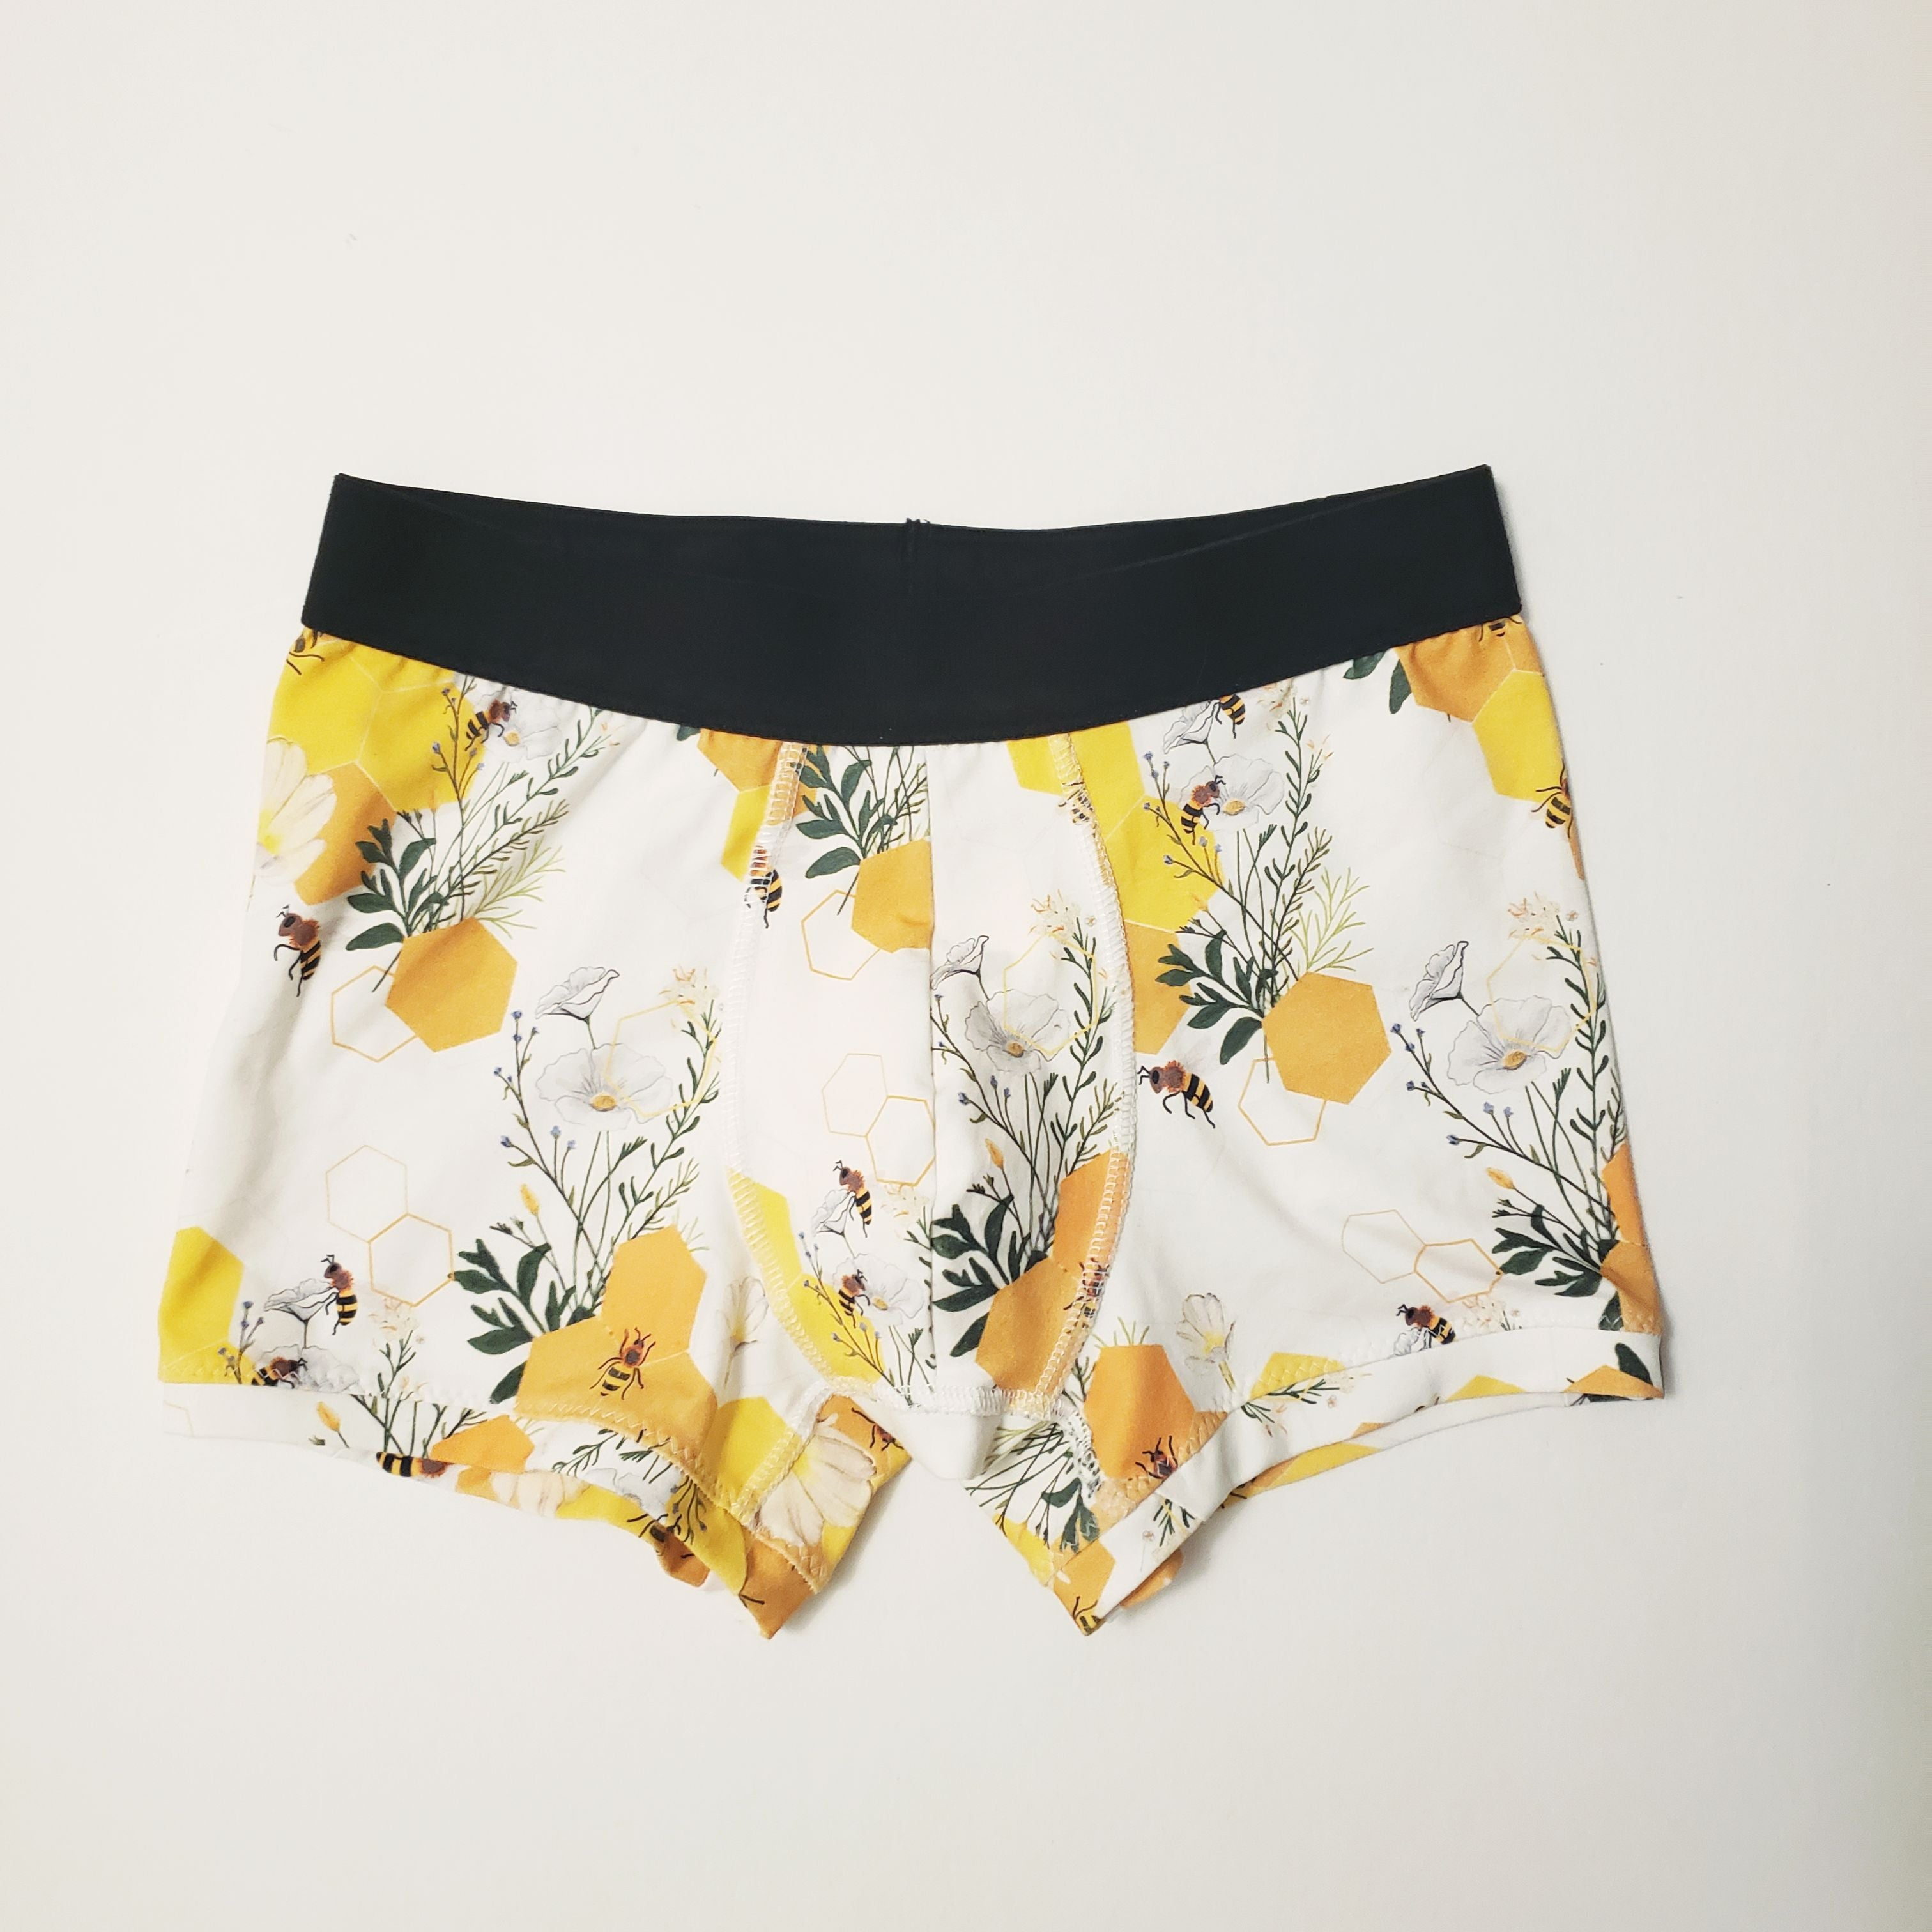 Honey Bee Organic Cotton Boxer Brief Men/Women